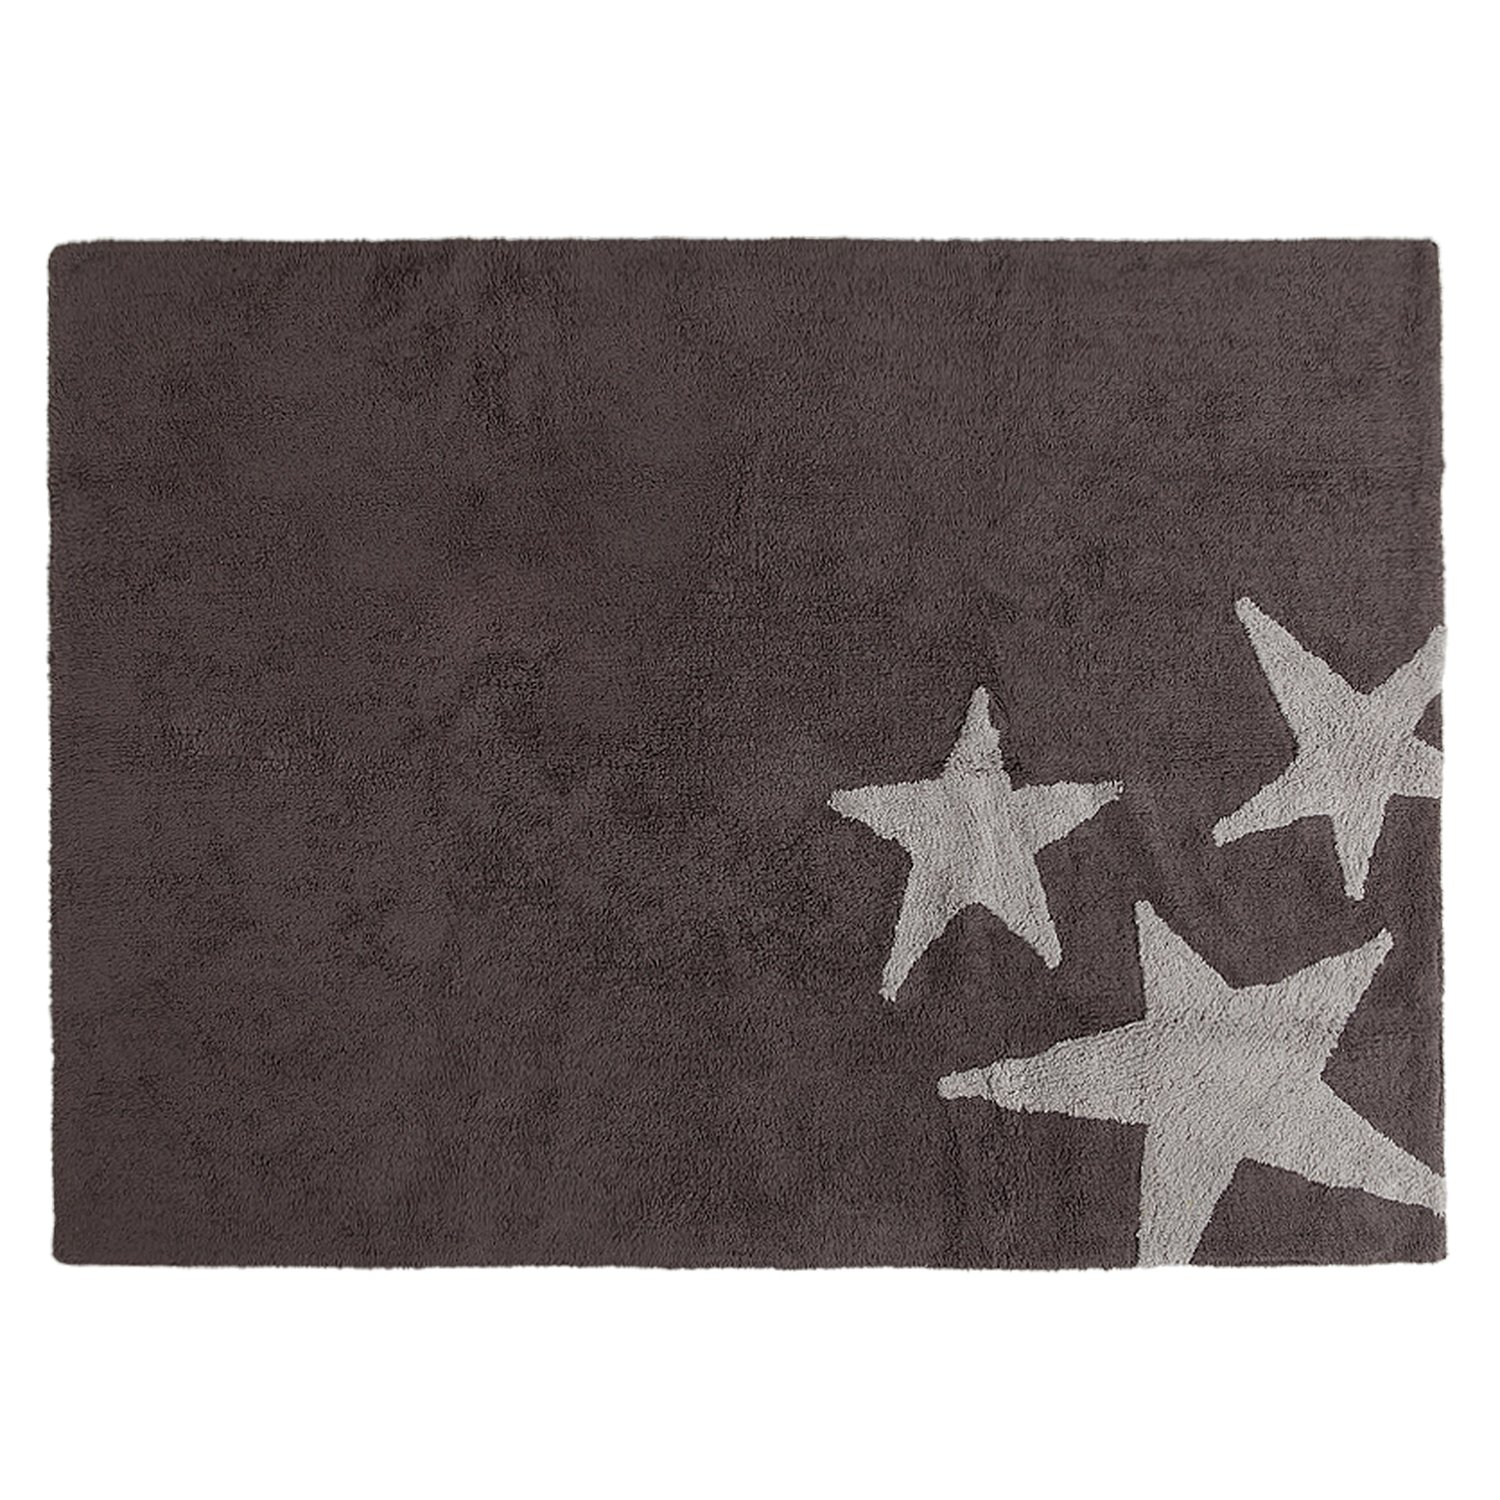 Lorena Canals Three Stars Machine Washable Kids Rug, 4 x 5 Feet, Handmade From 100% Natural Cotton and Non-Toxic Dyes, Perfect for Nursery, Baby or Childrens Rooms, Works for Outdoor or Beach